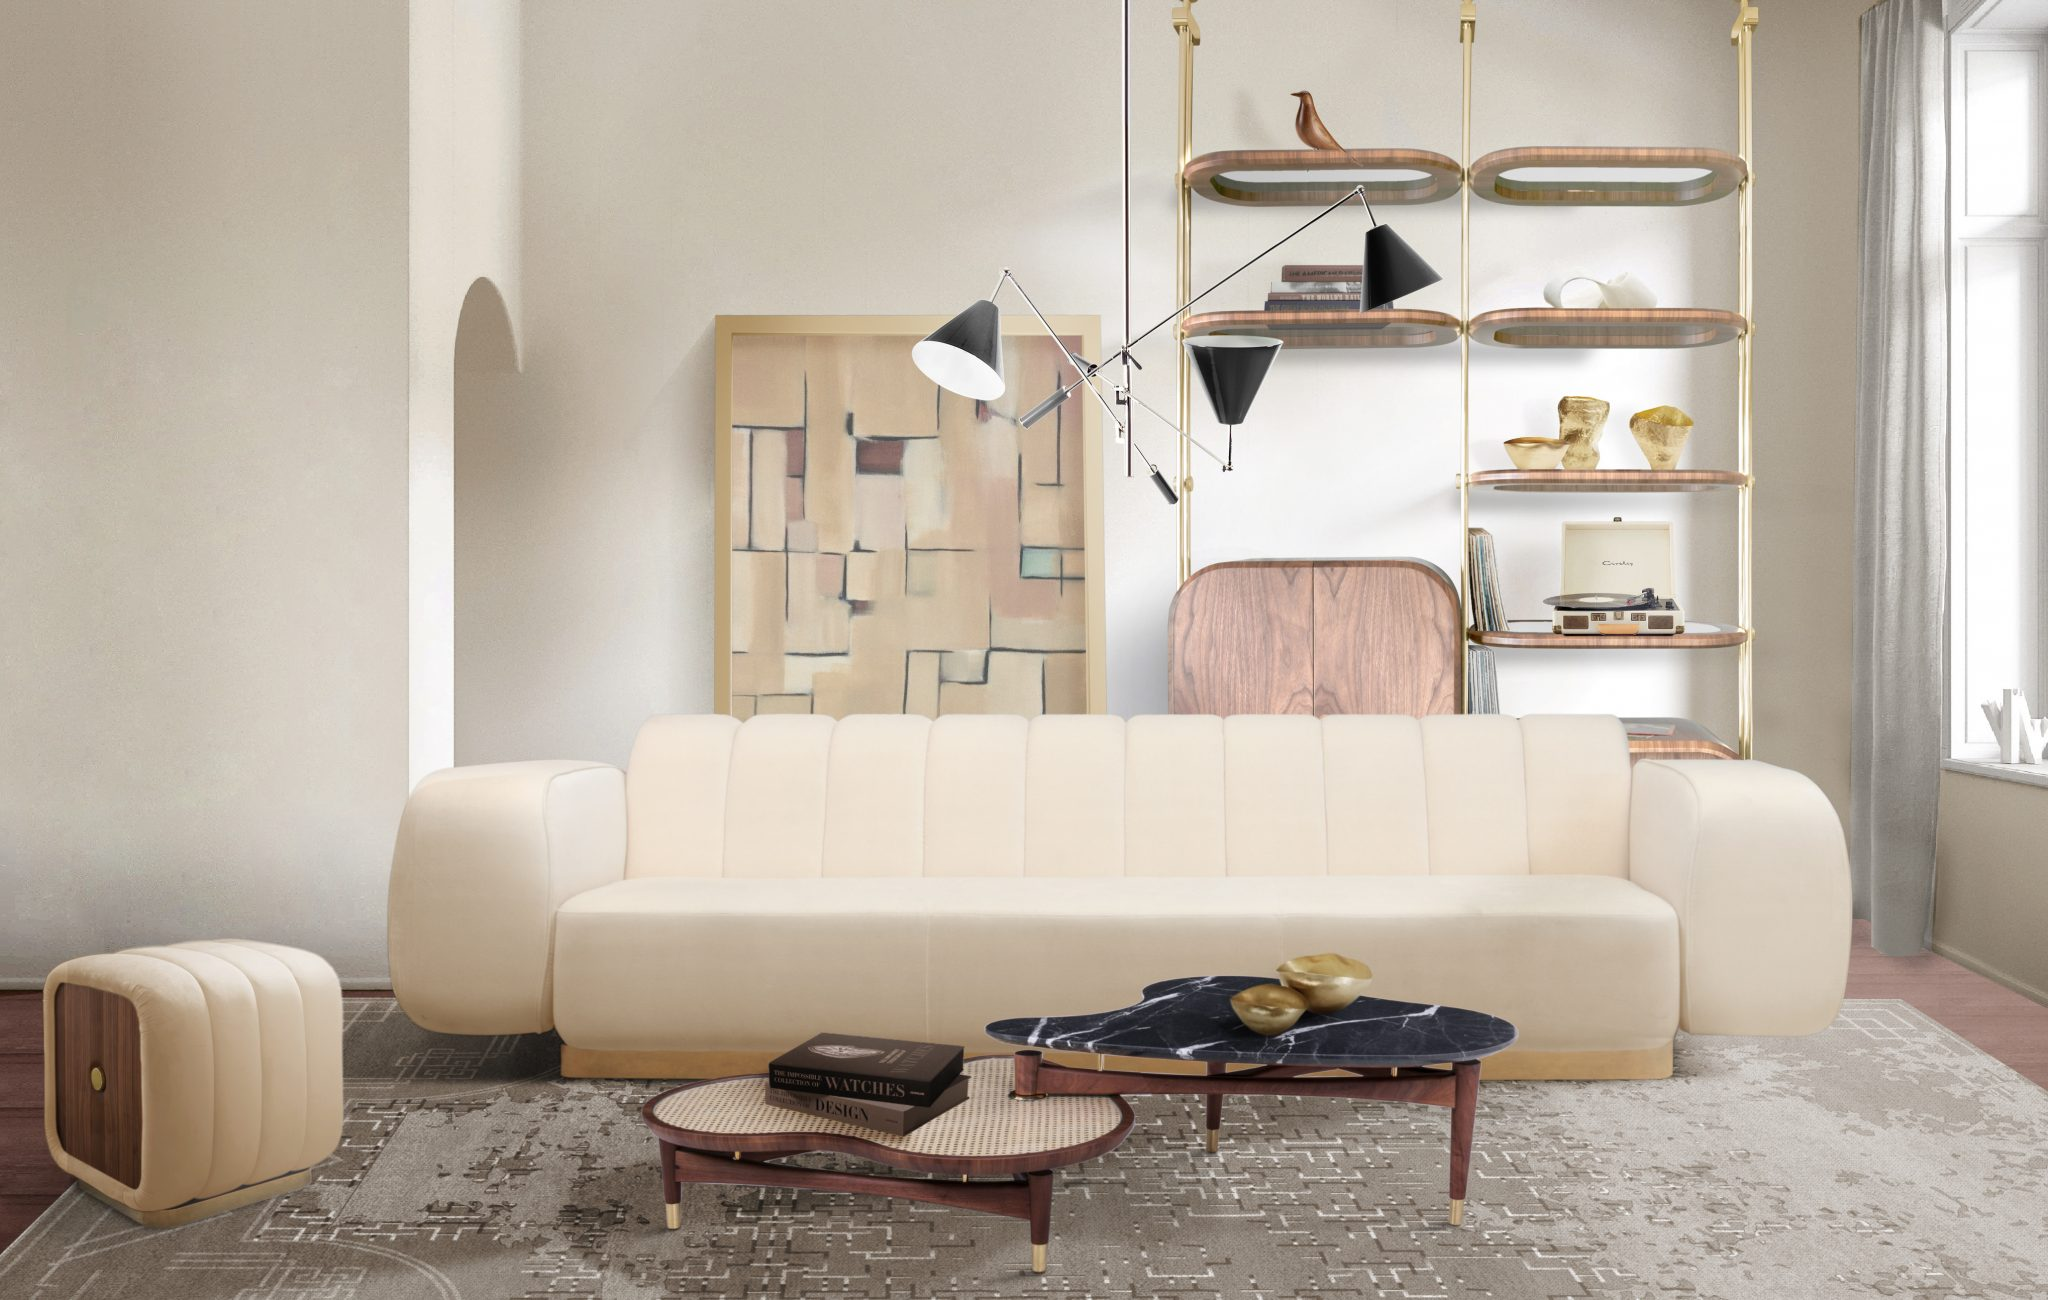 THE PERFECT LIGHTING PIECE FOR AN ELEGANT MID-CENTURY LIVING ROOM